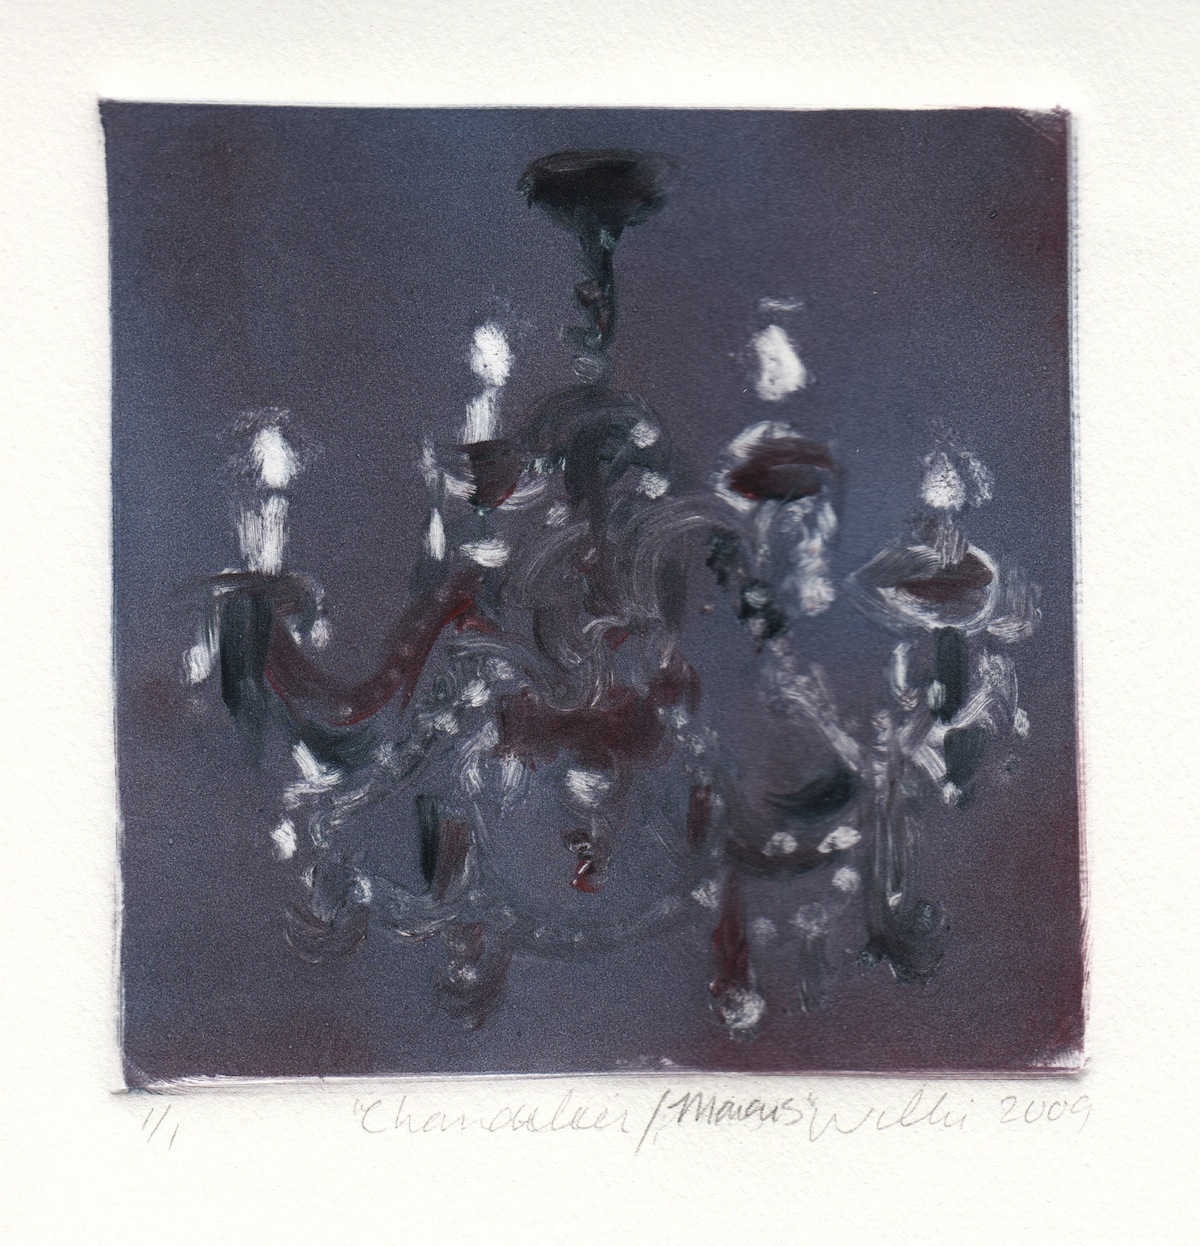 "Nancy Willis   Chandelier/Marais , 2009 monotype 5"" x 5"", framed 14"" x 12"""